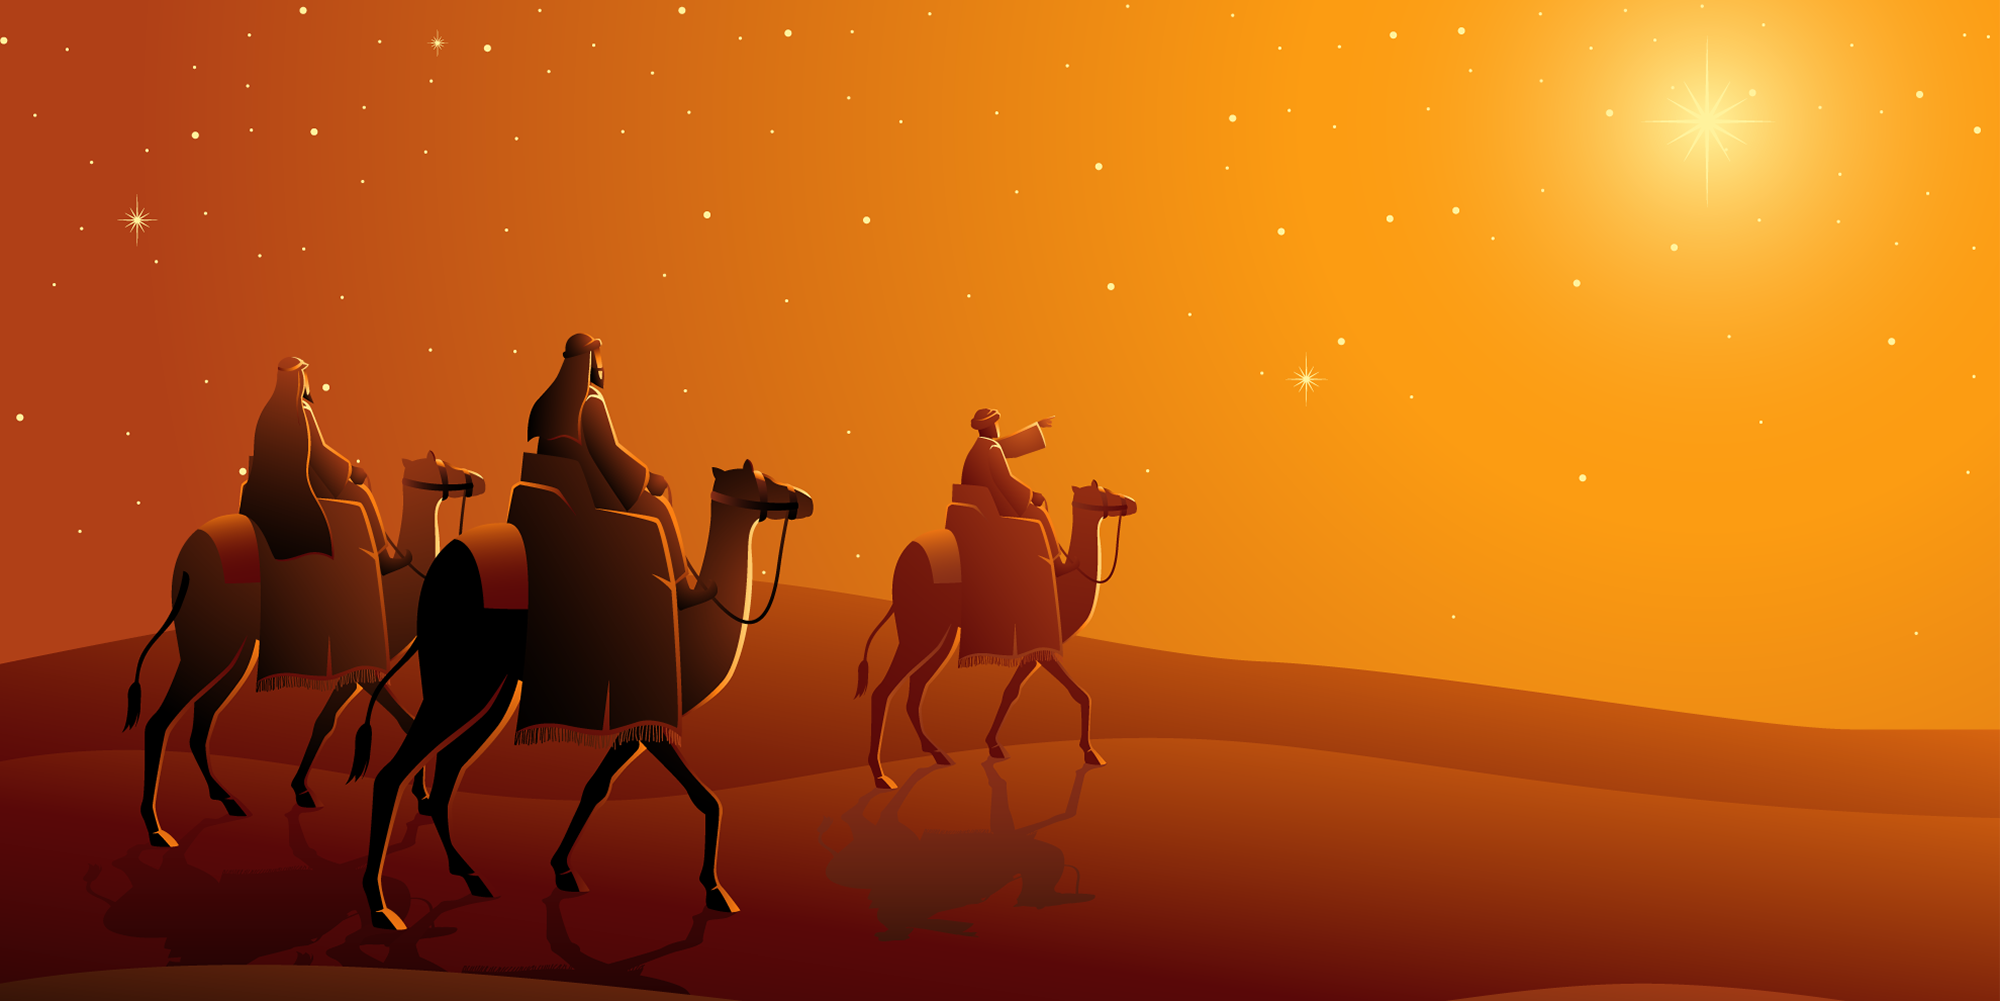 Wise Men by rudall30 via Adobe Stock